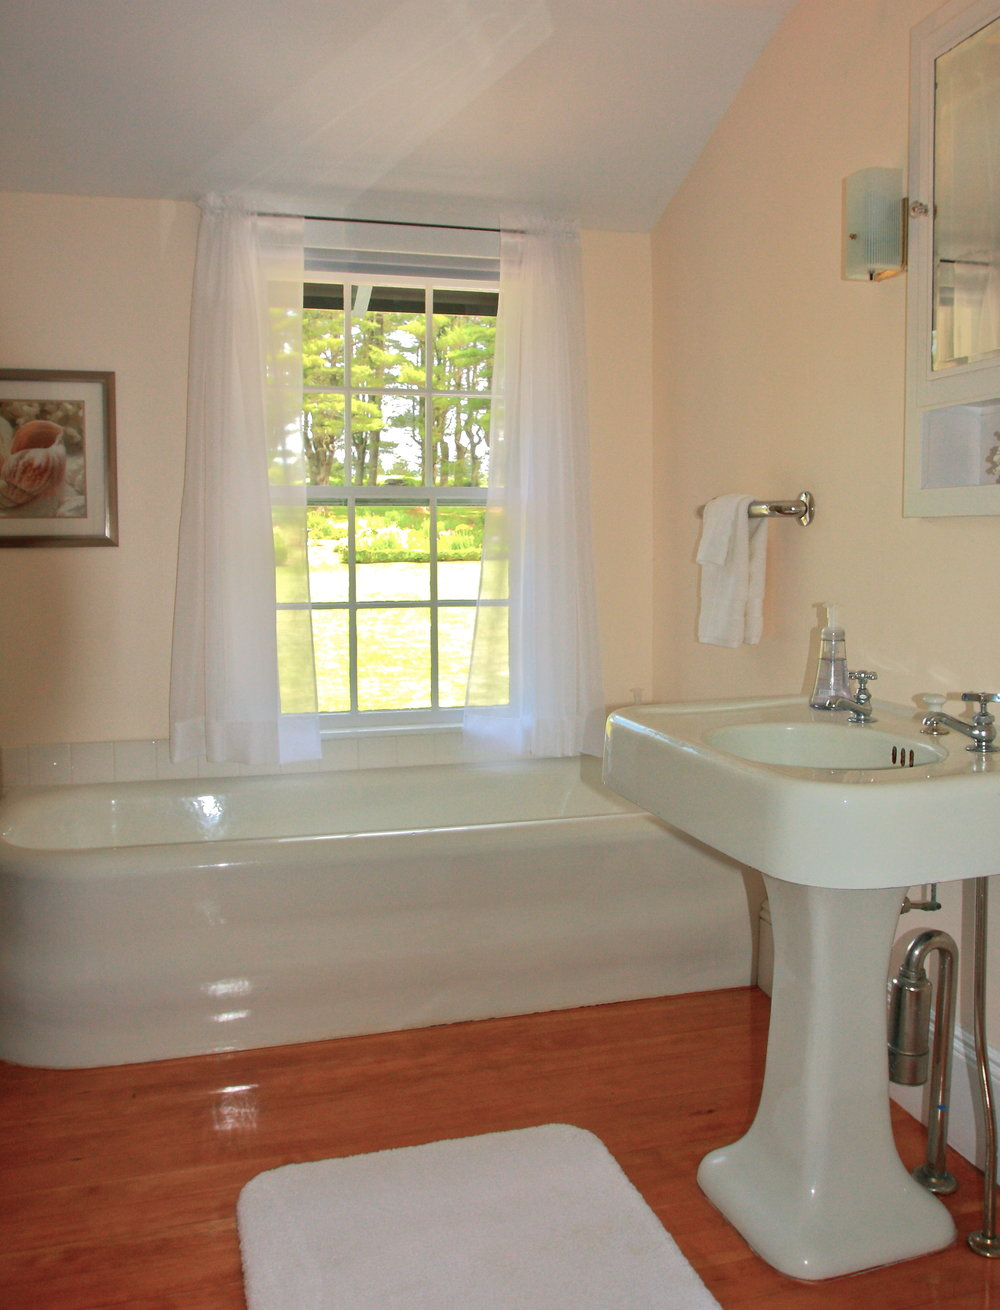 Bathroom with Formal Garden View